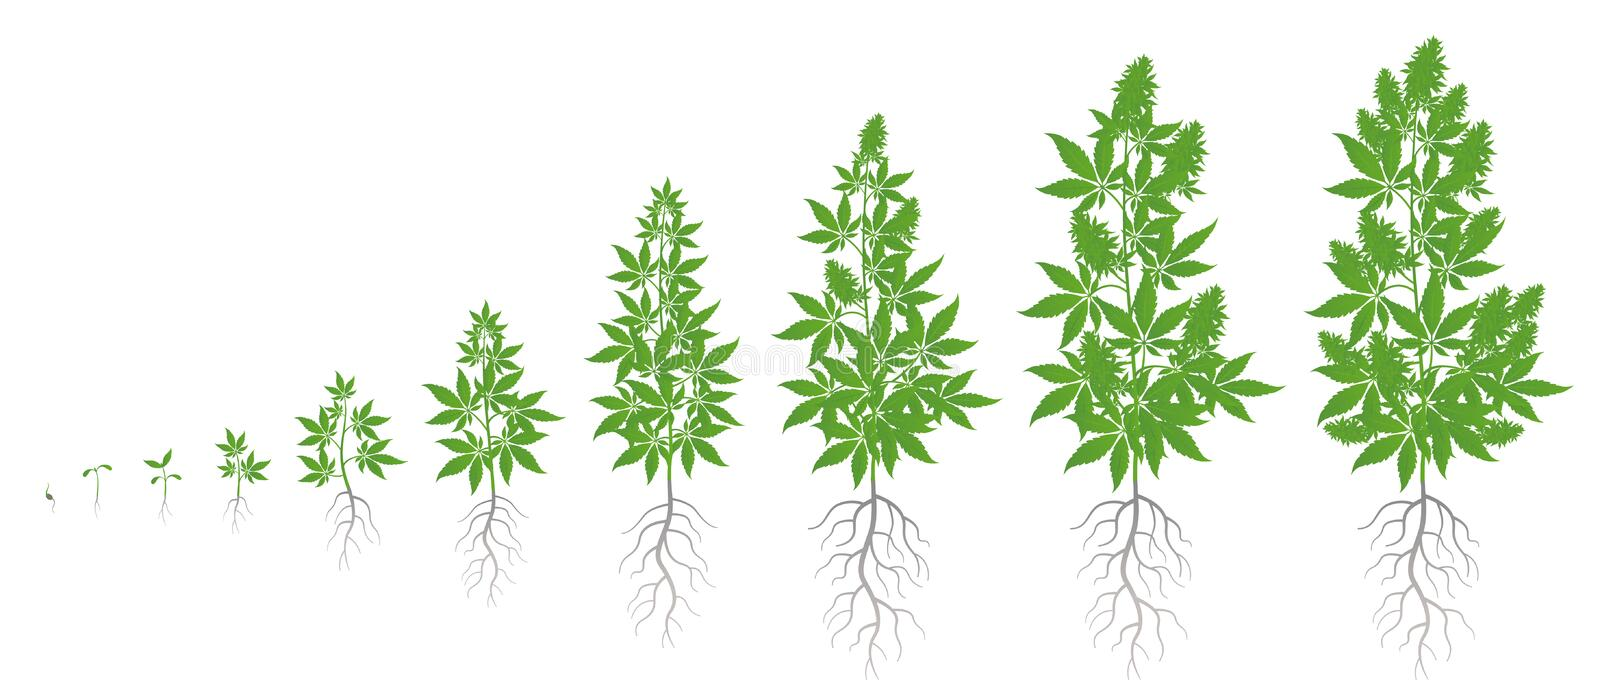 Growth stages of hemp plant. Marijuana phases set. Cannabis indica ripening period. The life cycle. Weed Growing royalty free illustration